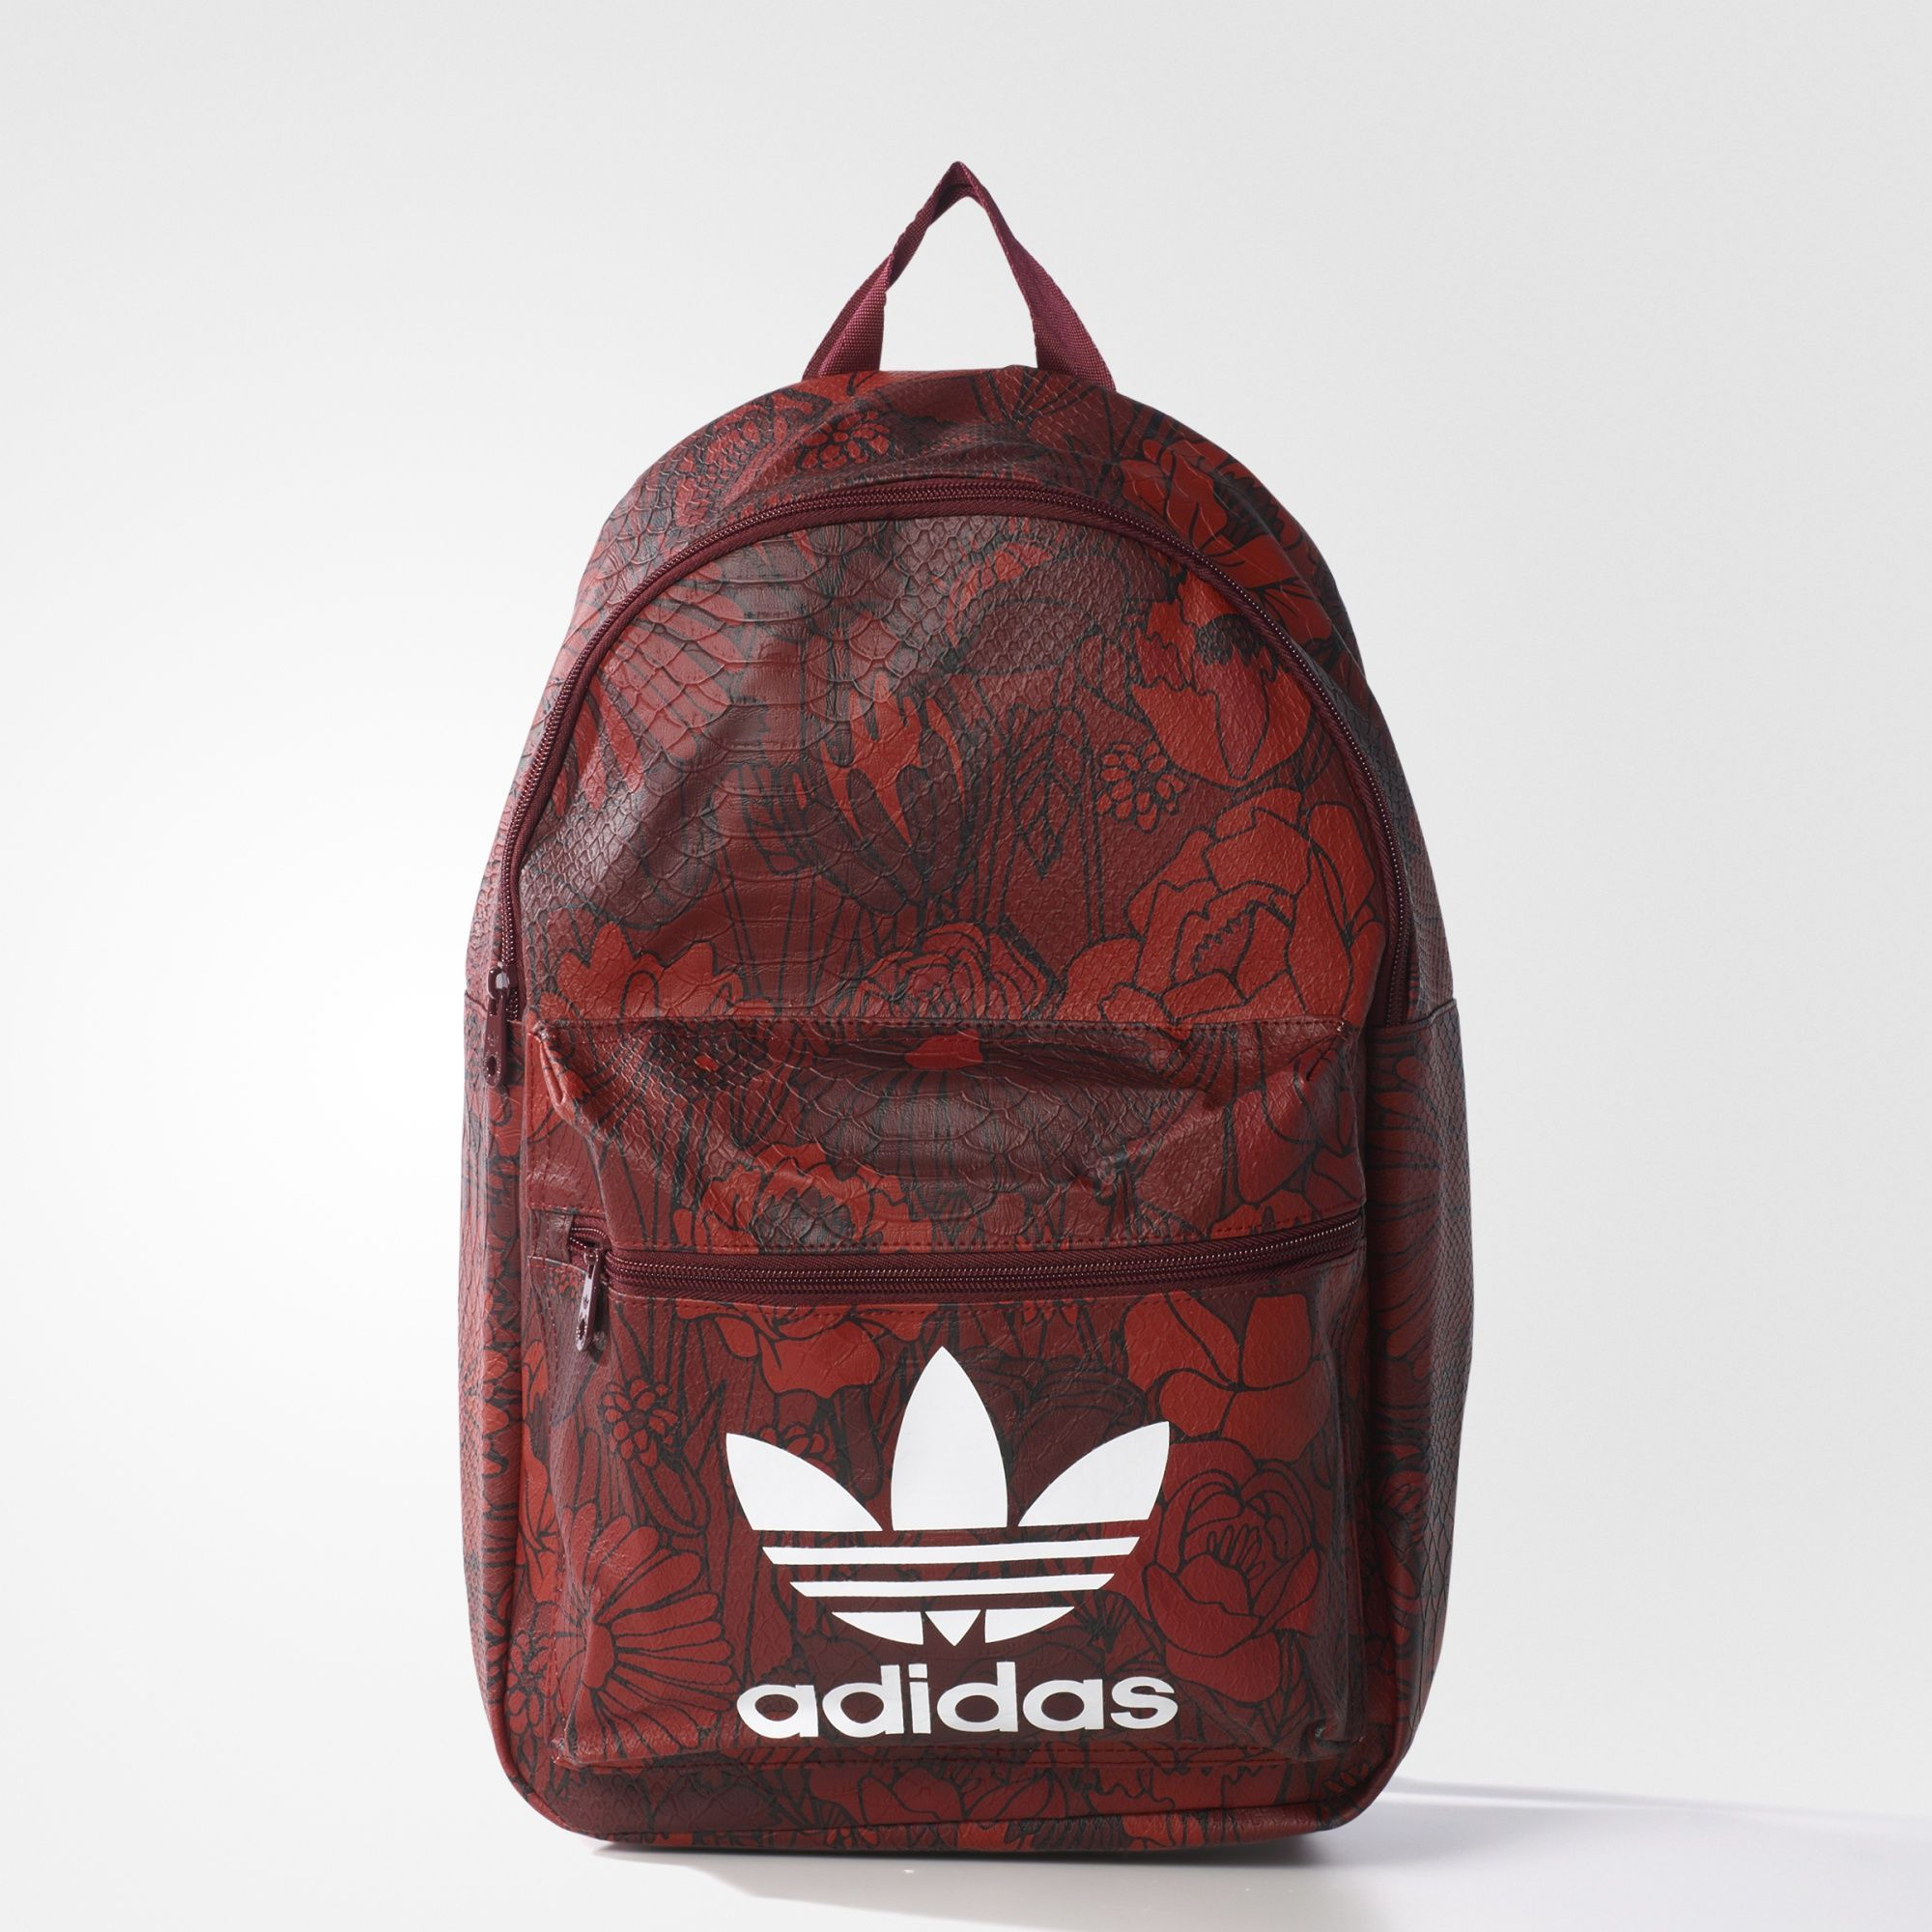 fb123d398 adidas - Flowers Classic Backpack | Adidas | Adidas backpack ...